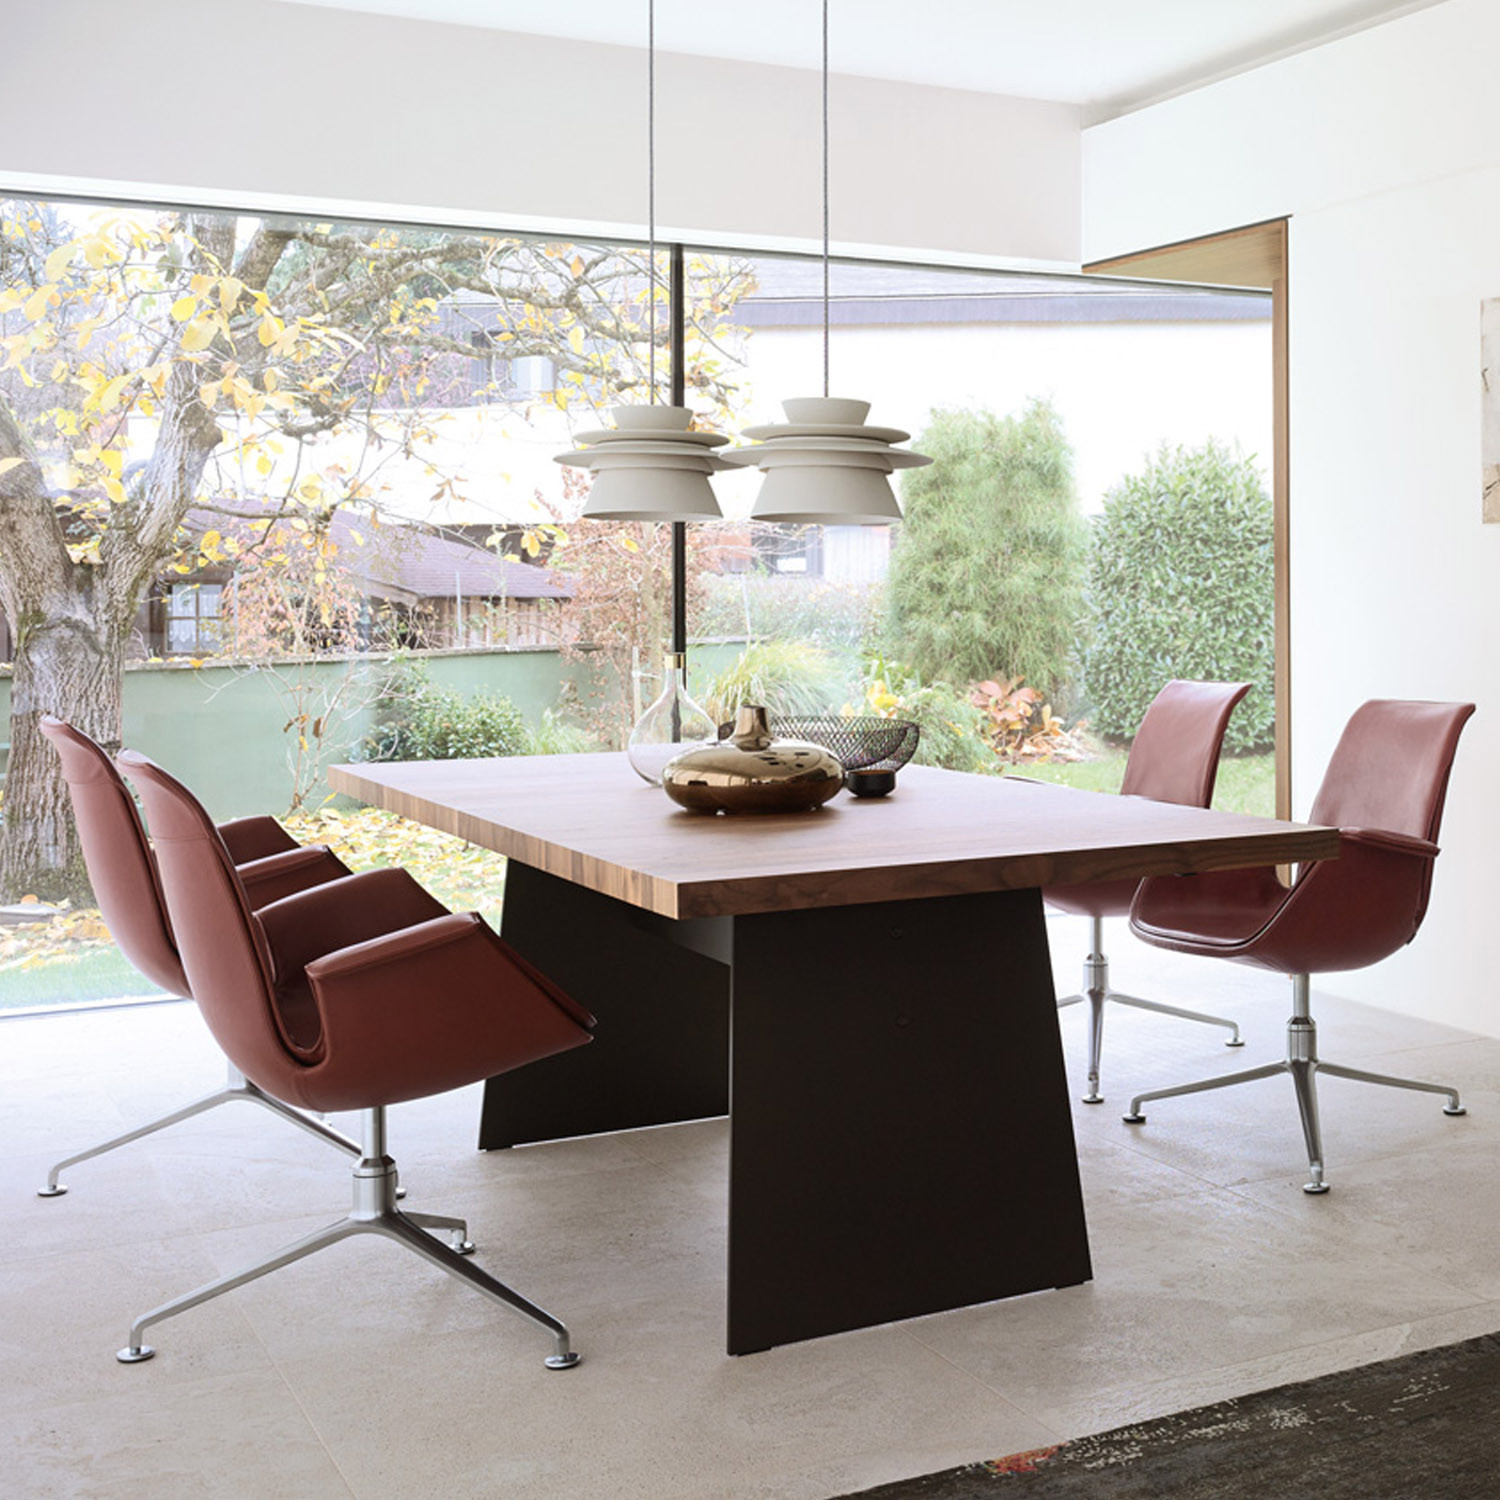 Walter Knoll FK Meeting Chairs